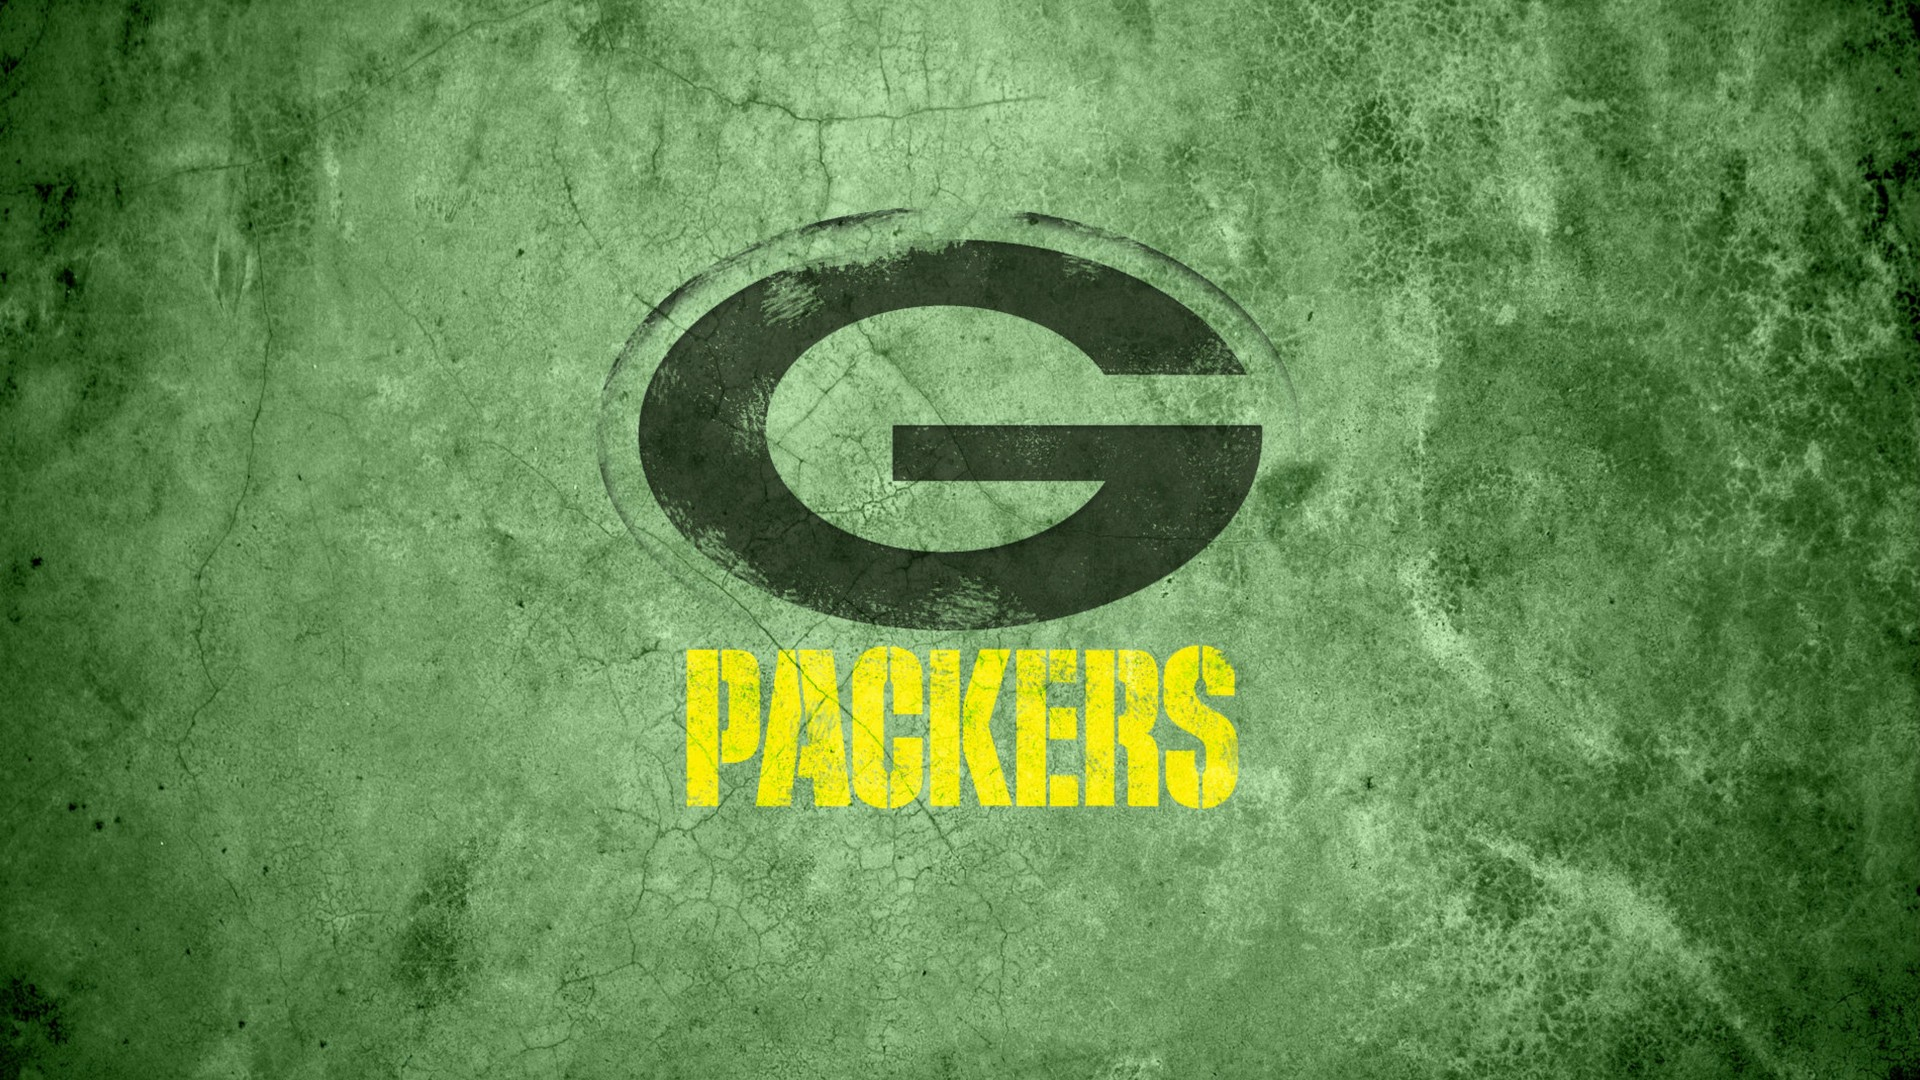 Football Hd Wallpapers For Iphone Hd Green Bay Packers Wallpapers 2019 Nfl Football Wallpapers